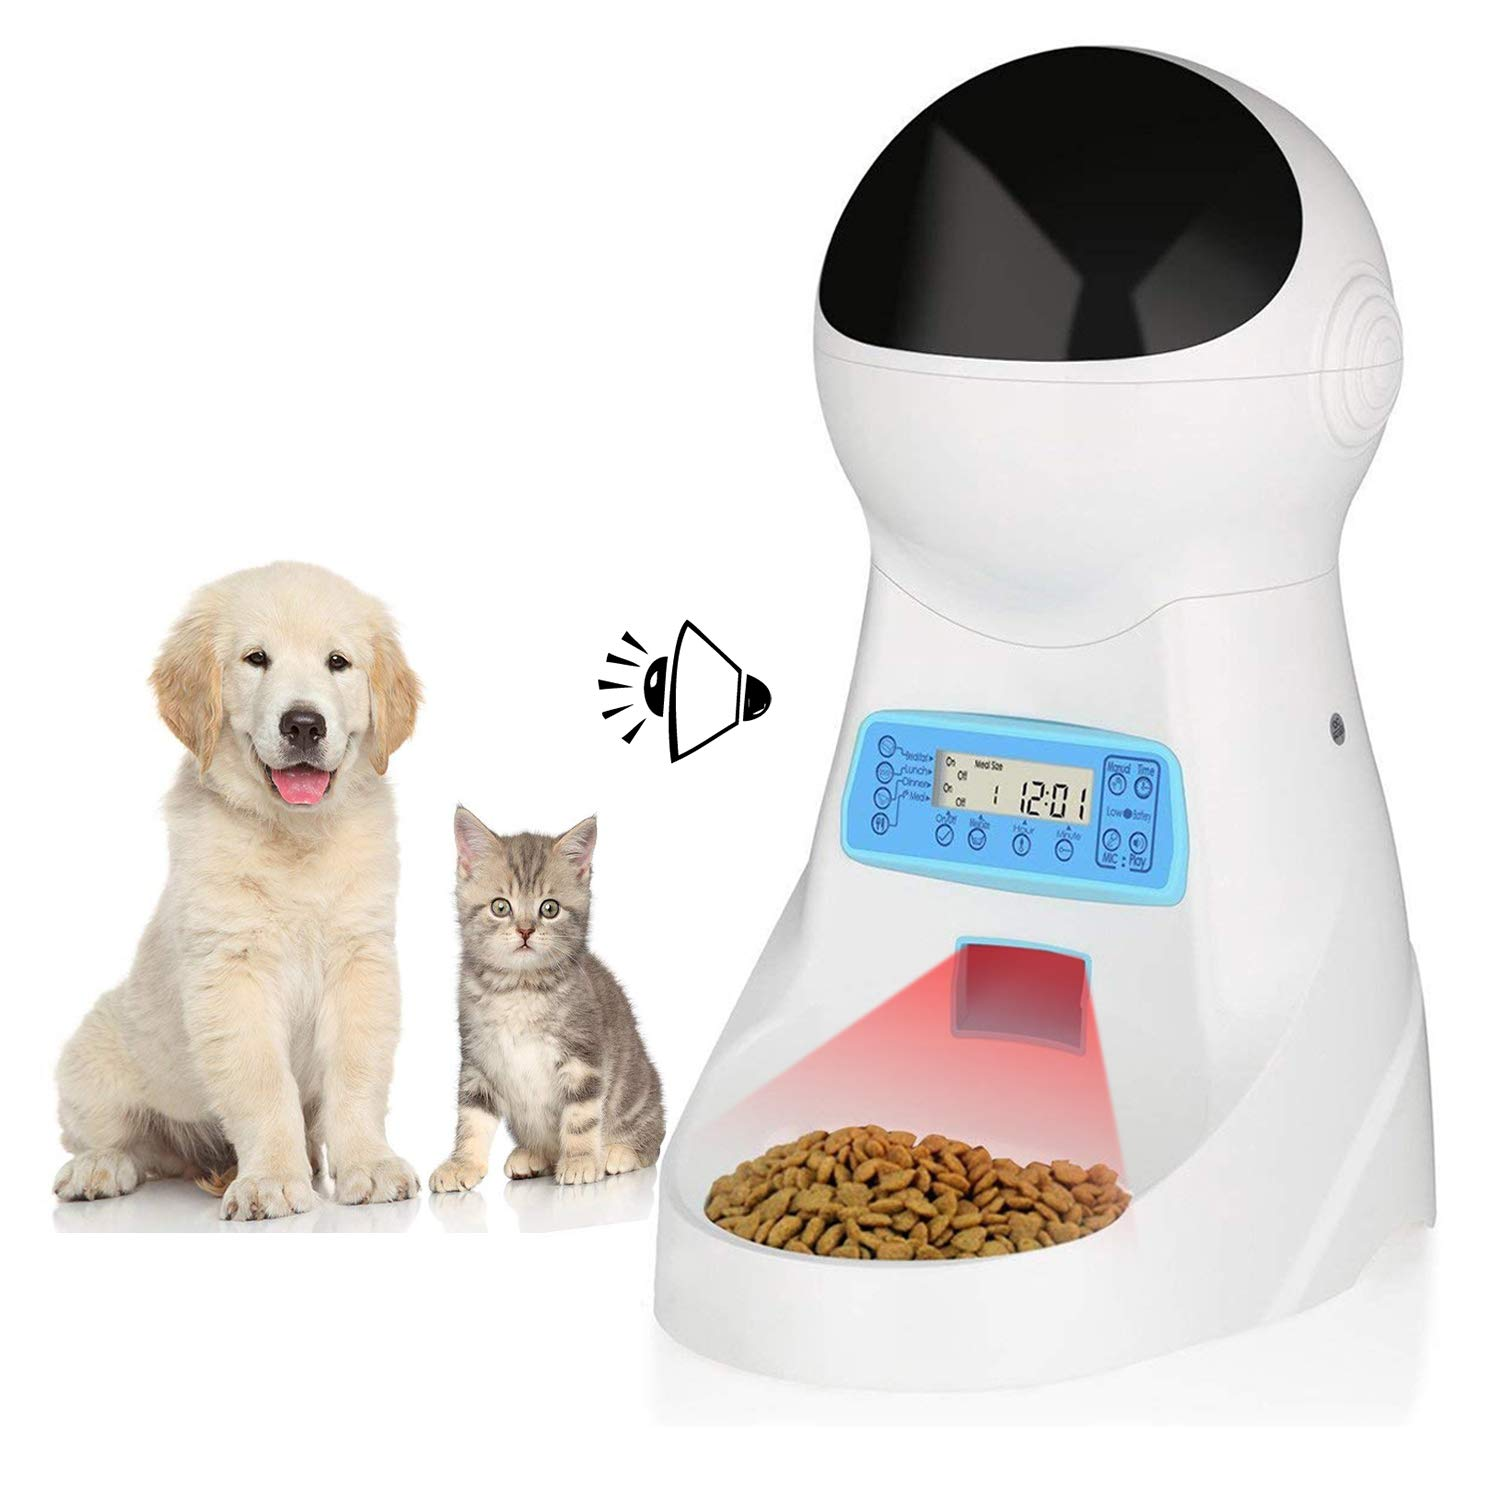 Trustful Cat Mate C50 Automatic 5 Meal Pet Feeder For Cats Or Small Dogs Boxed Wide Selection; Pet Supplies